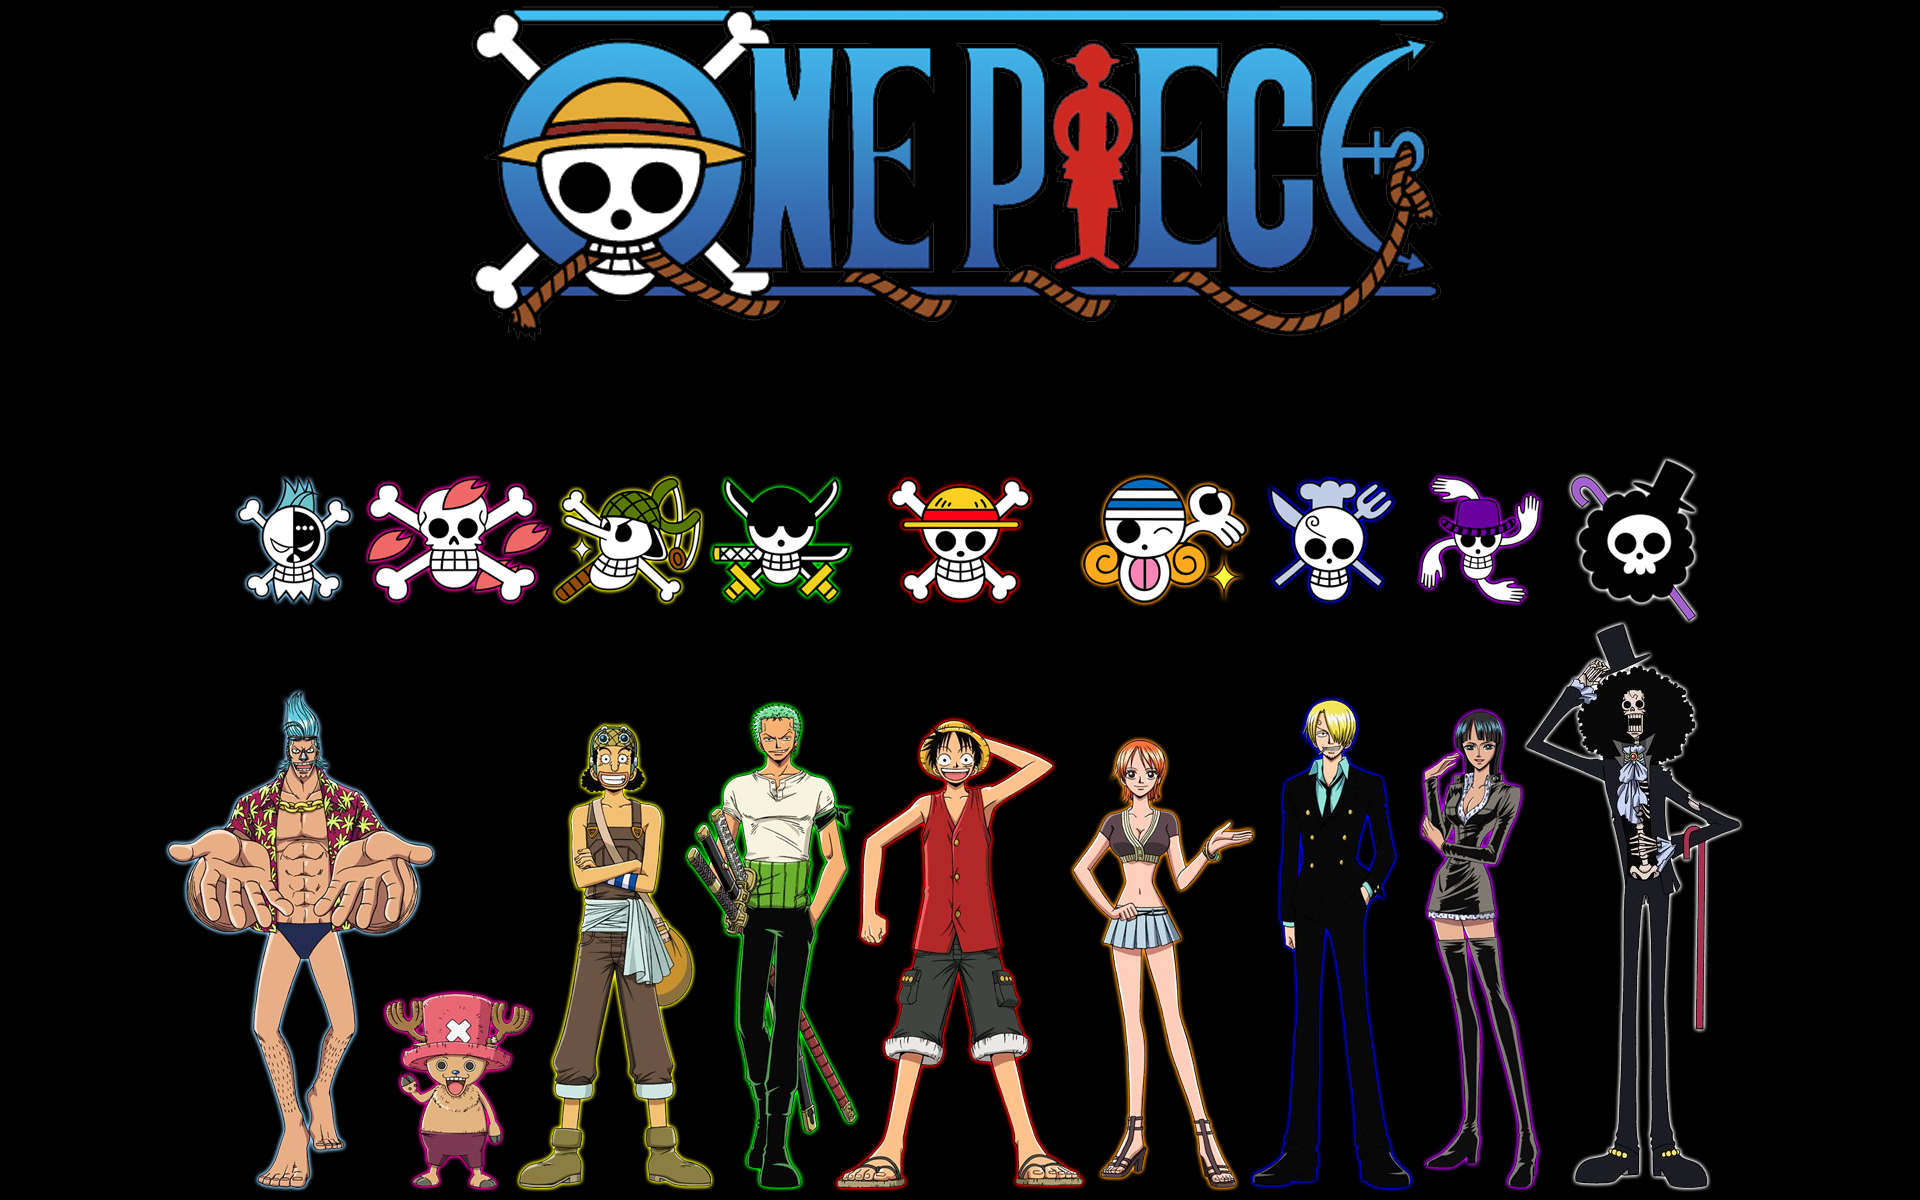 1920x1200 px One Piece Widescreen Image | Best Photos, v.77